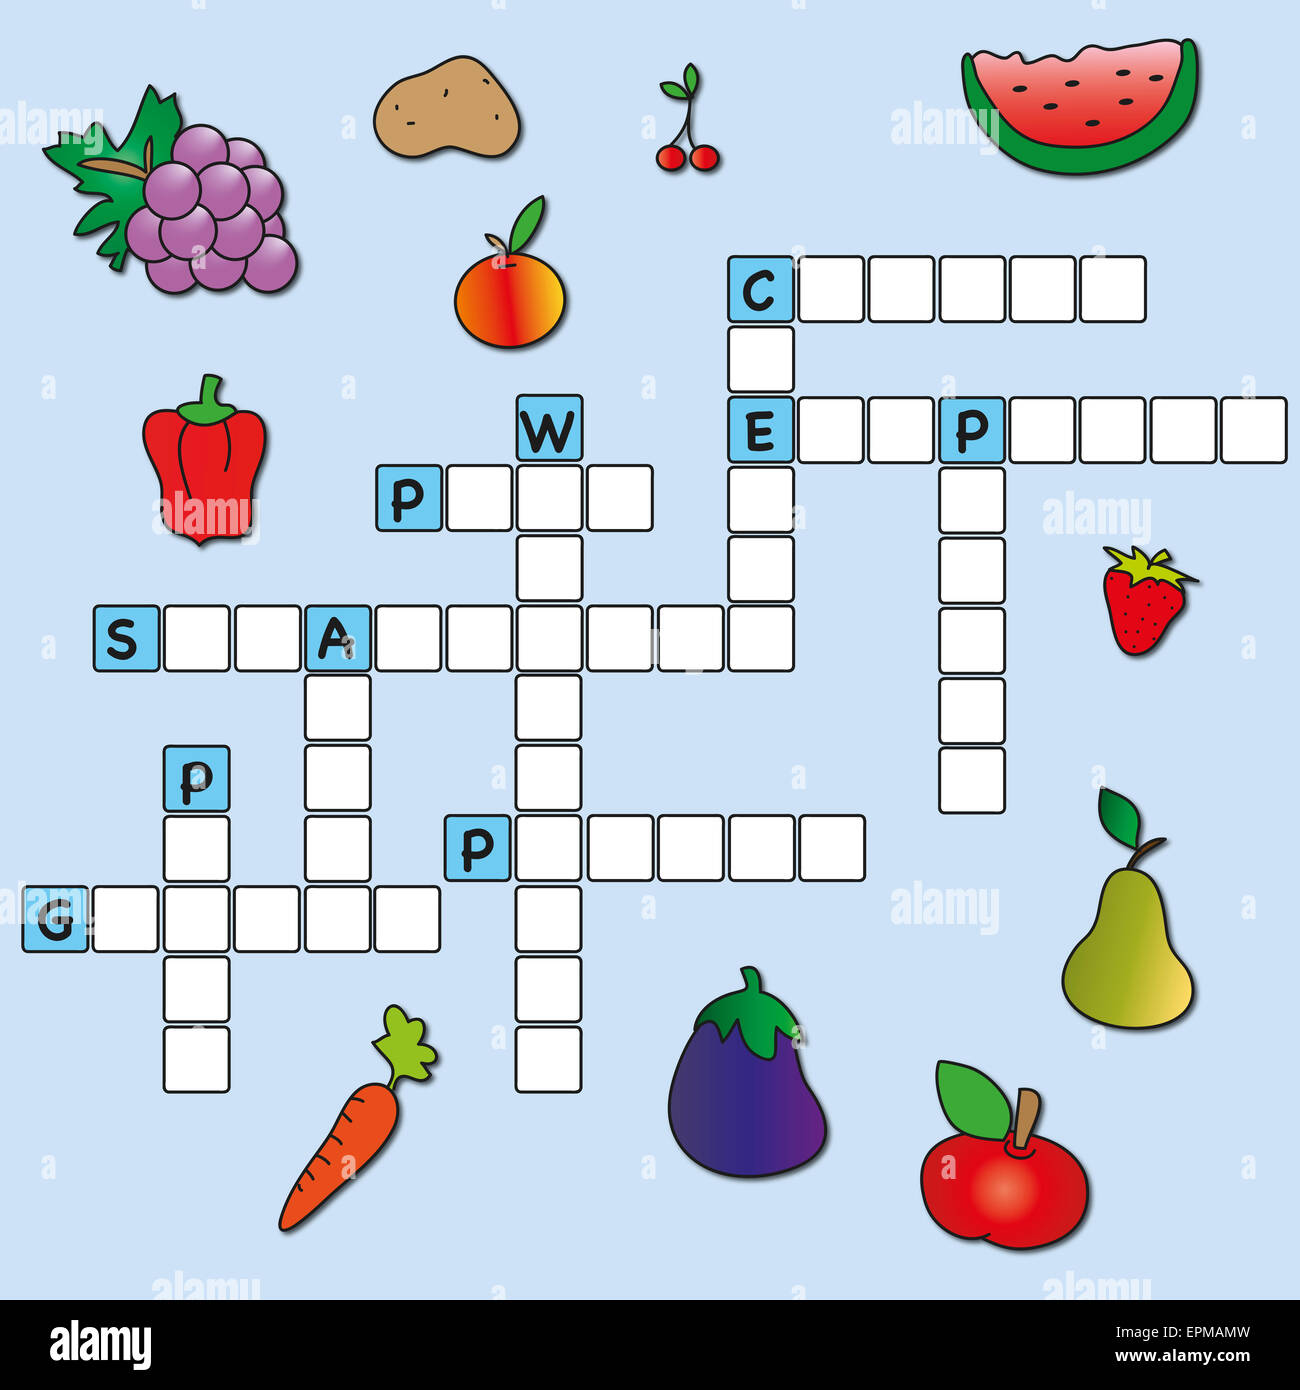 Easy Game For Children Crossword